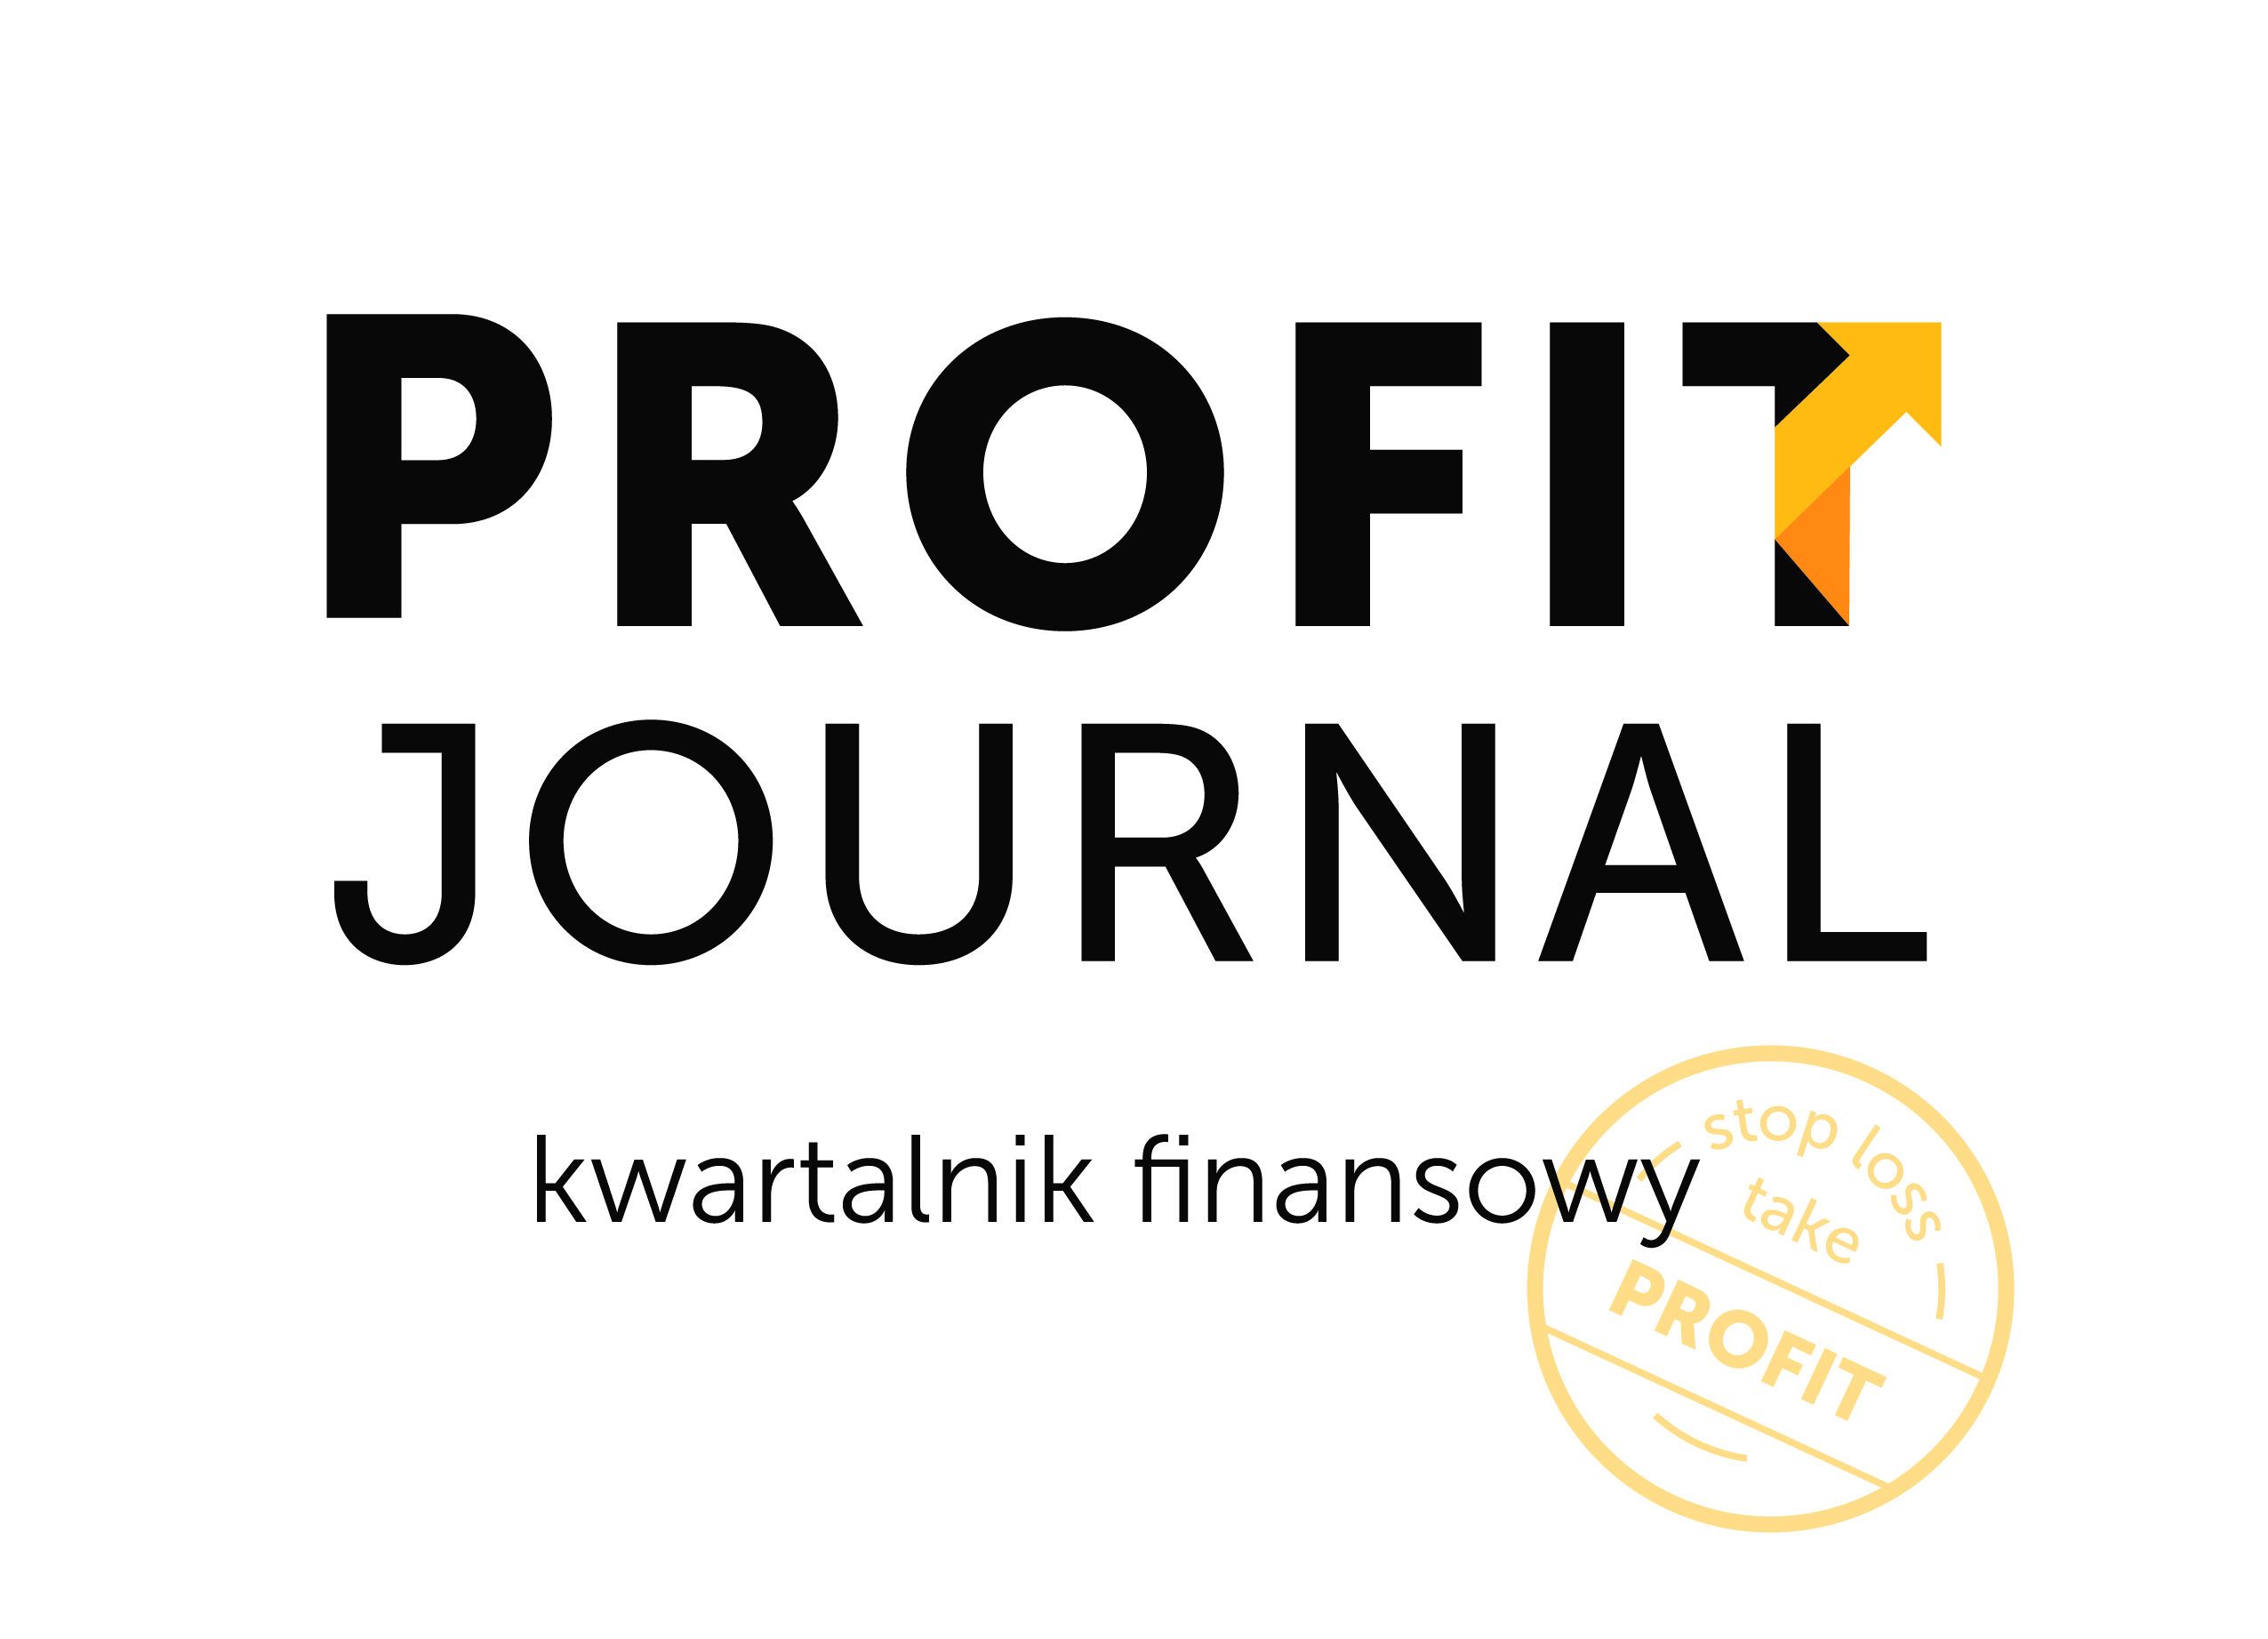 Profit Journal